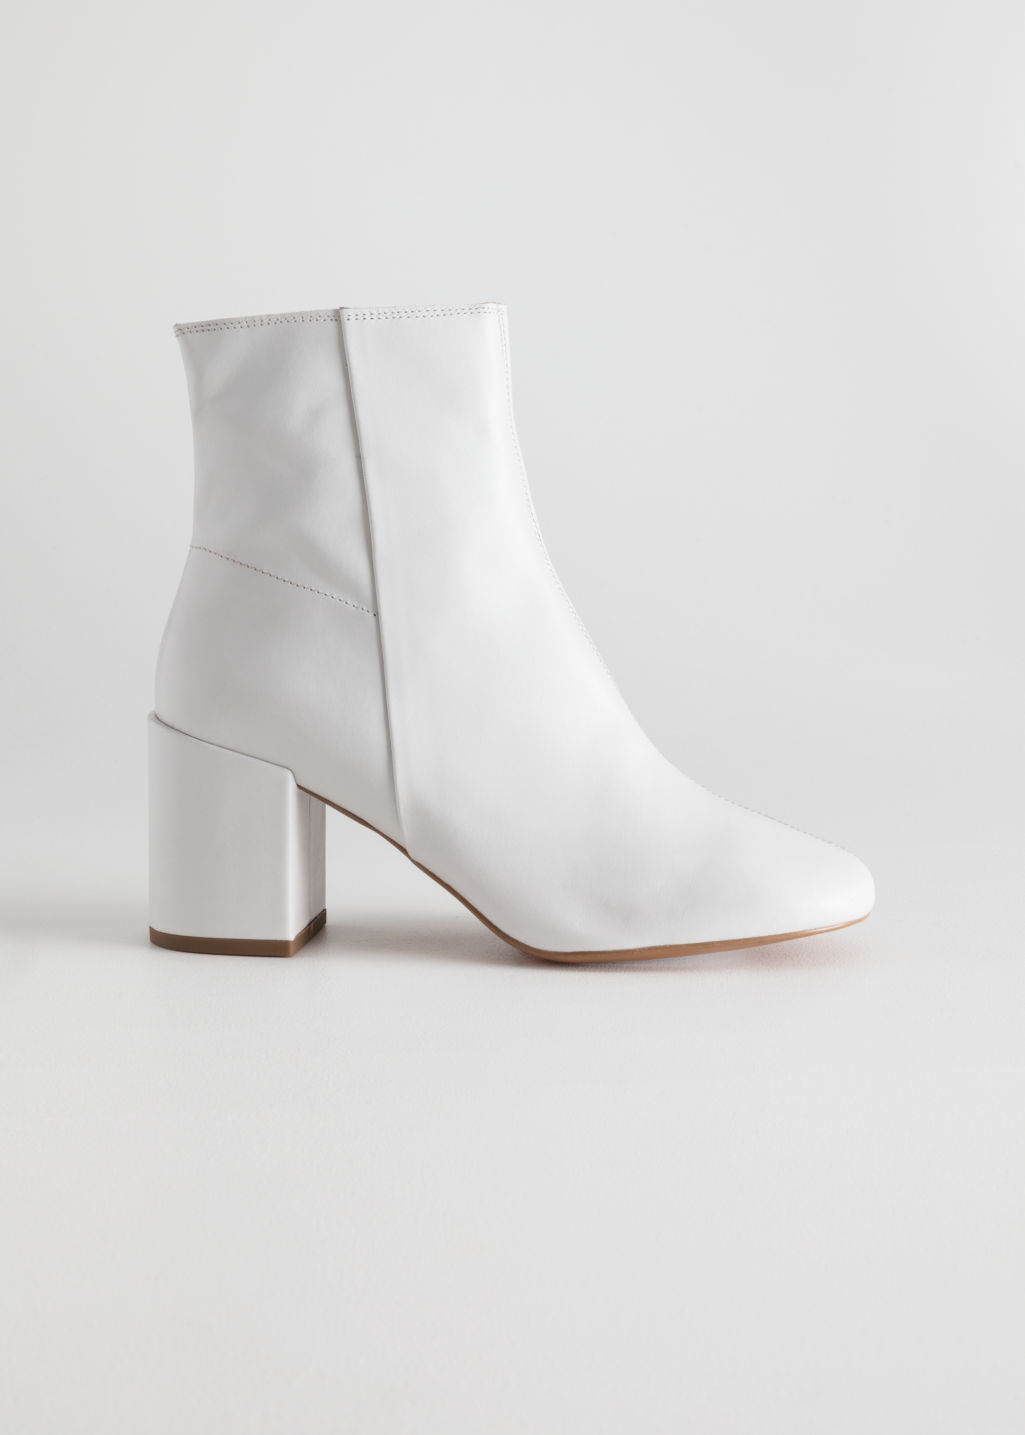 Leather Ankle Boots White Ankleboots Amp Other Stories